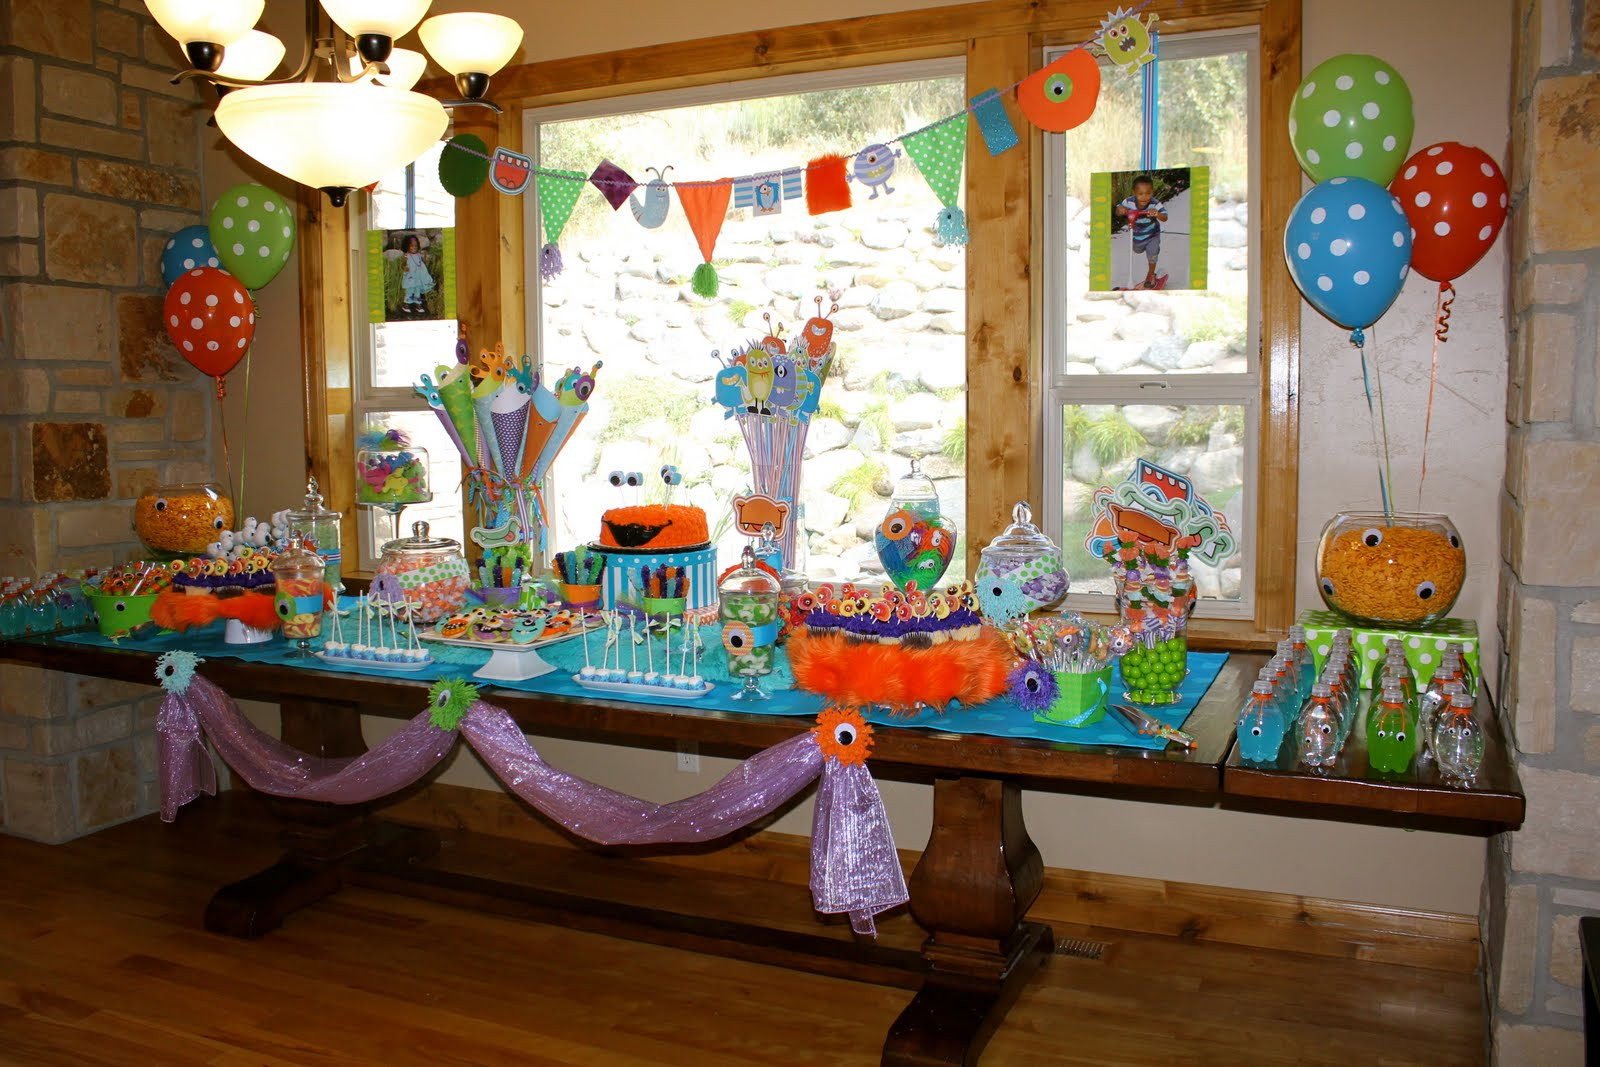 Best ideas about Monster Birthday Decorations . Save or Pin Bridgey Widgey Monster Birthday Party Now.